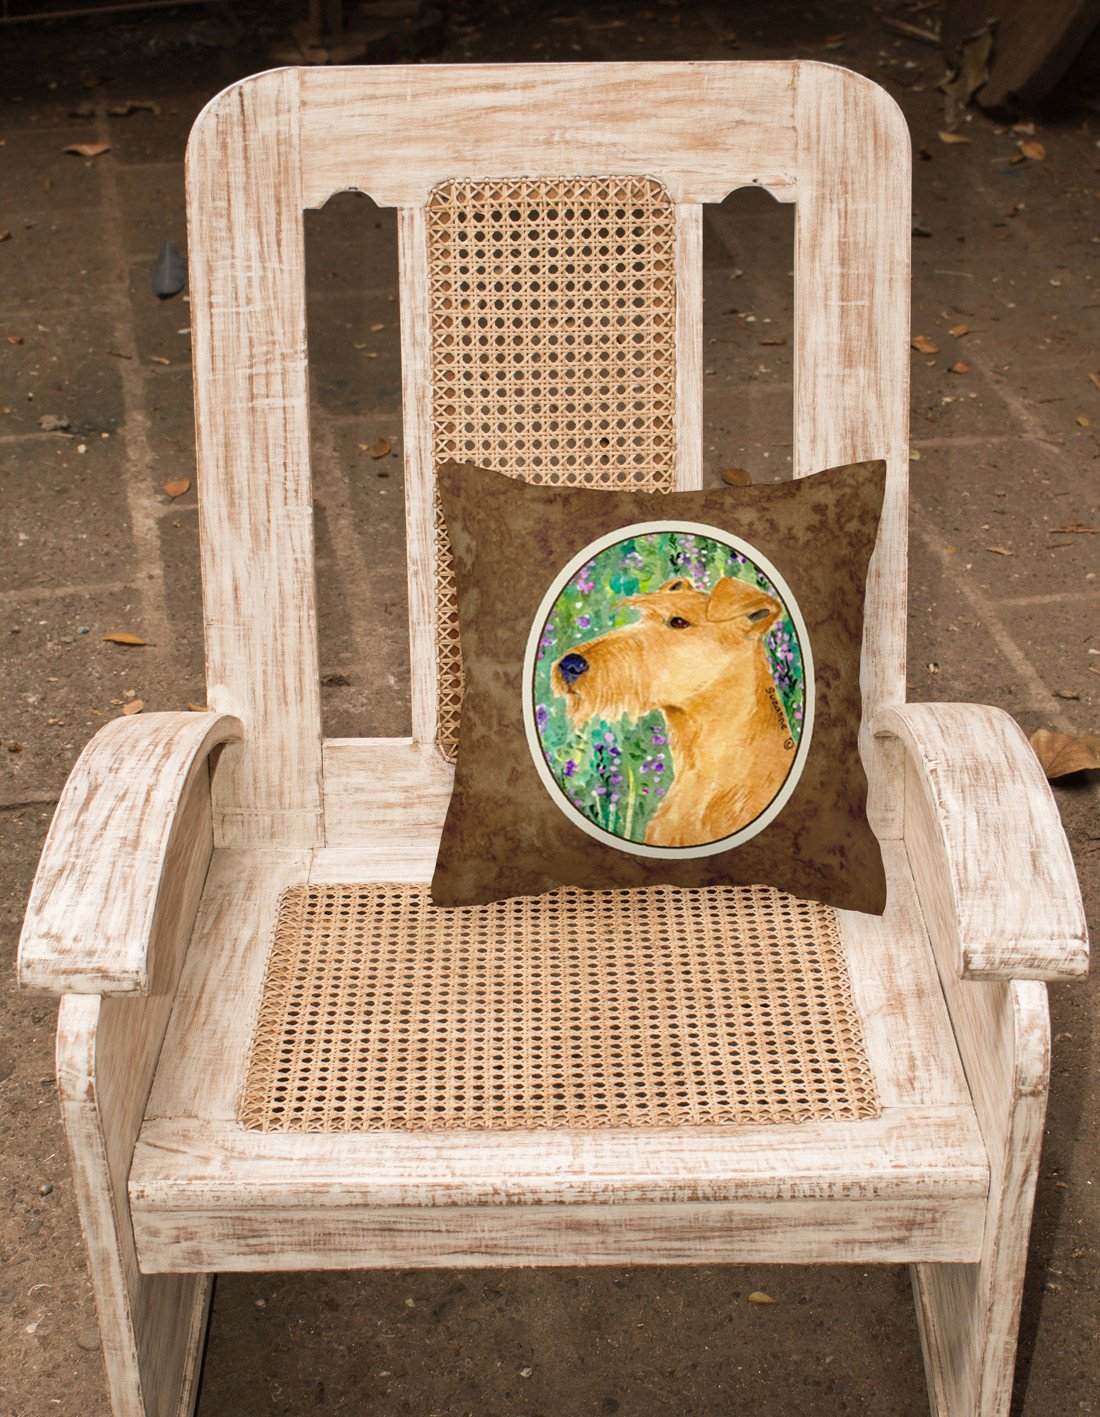 Irish Terrier Decorative   Canvas Fabric Pillow by Caroline's Treasures